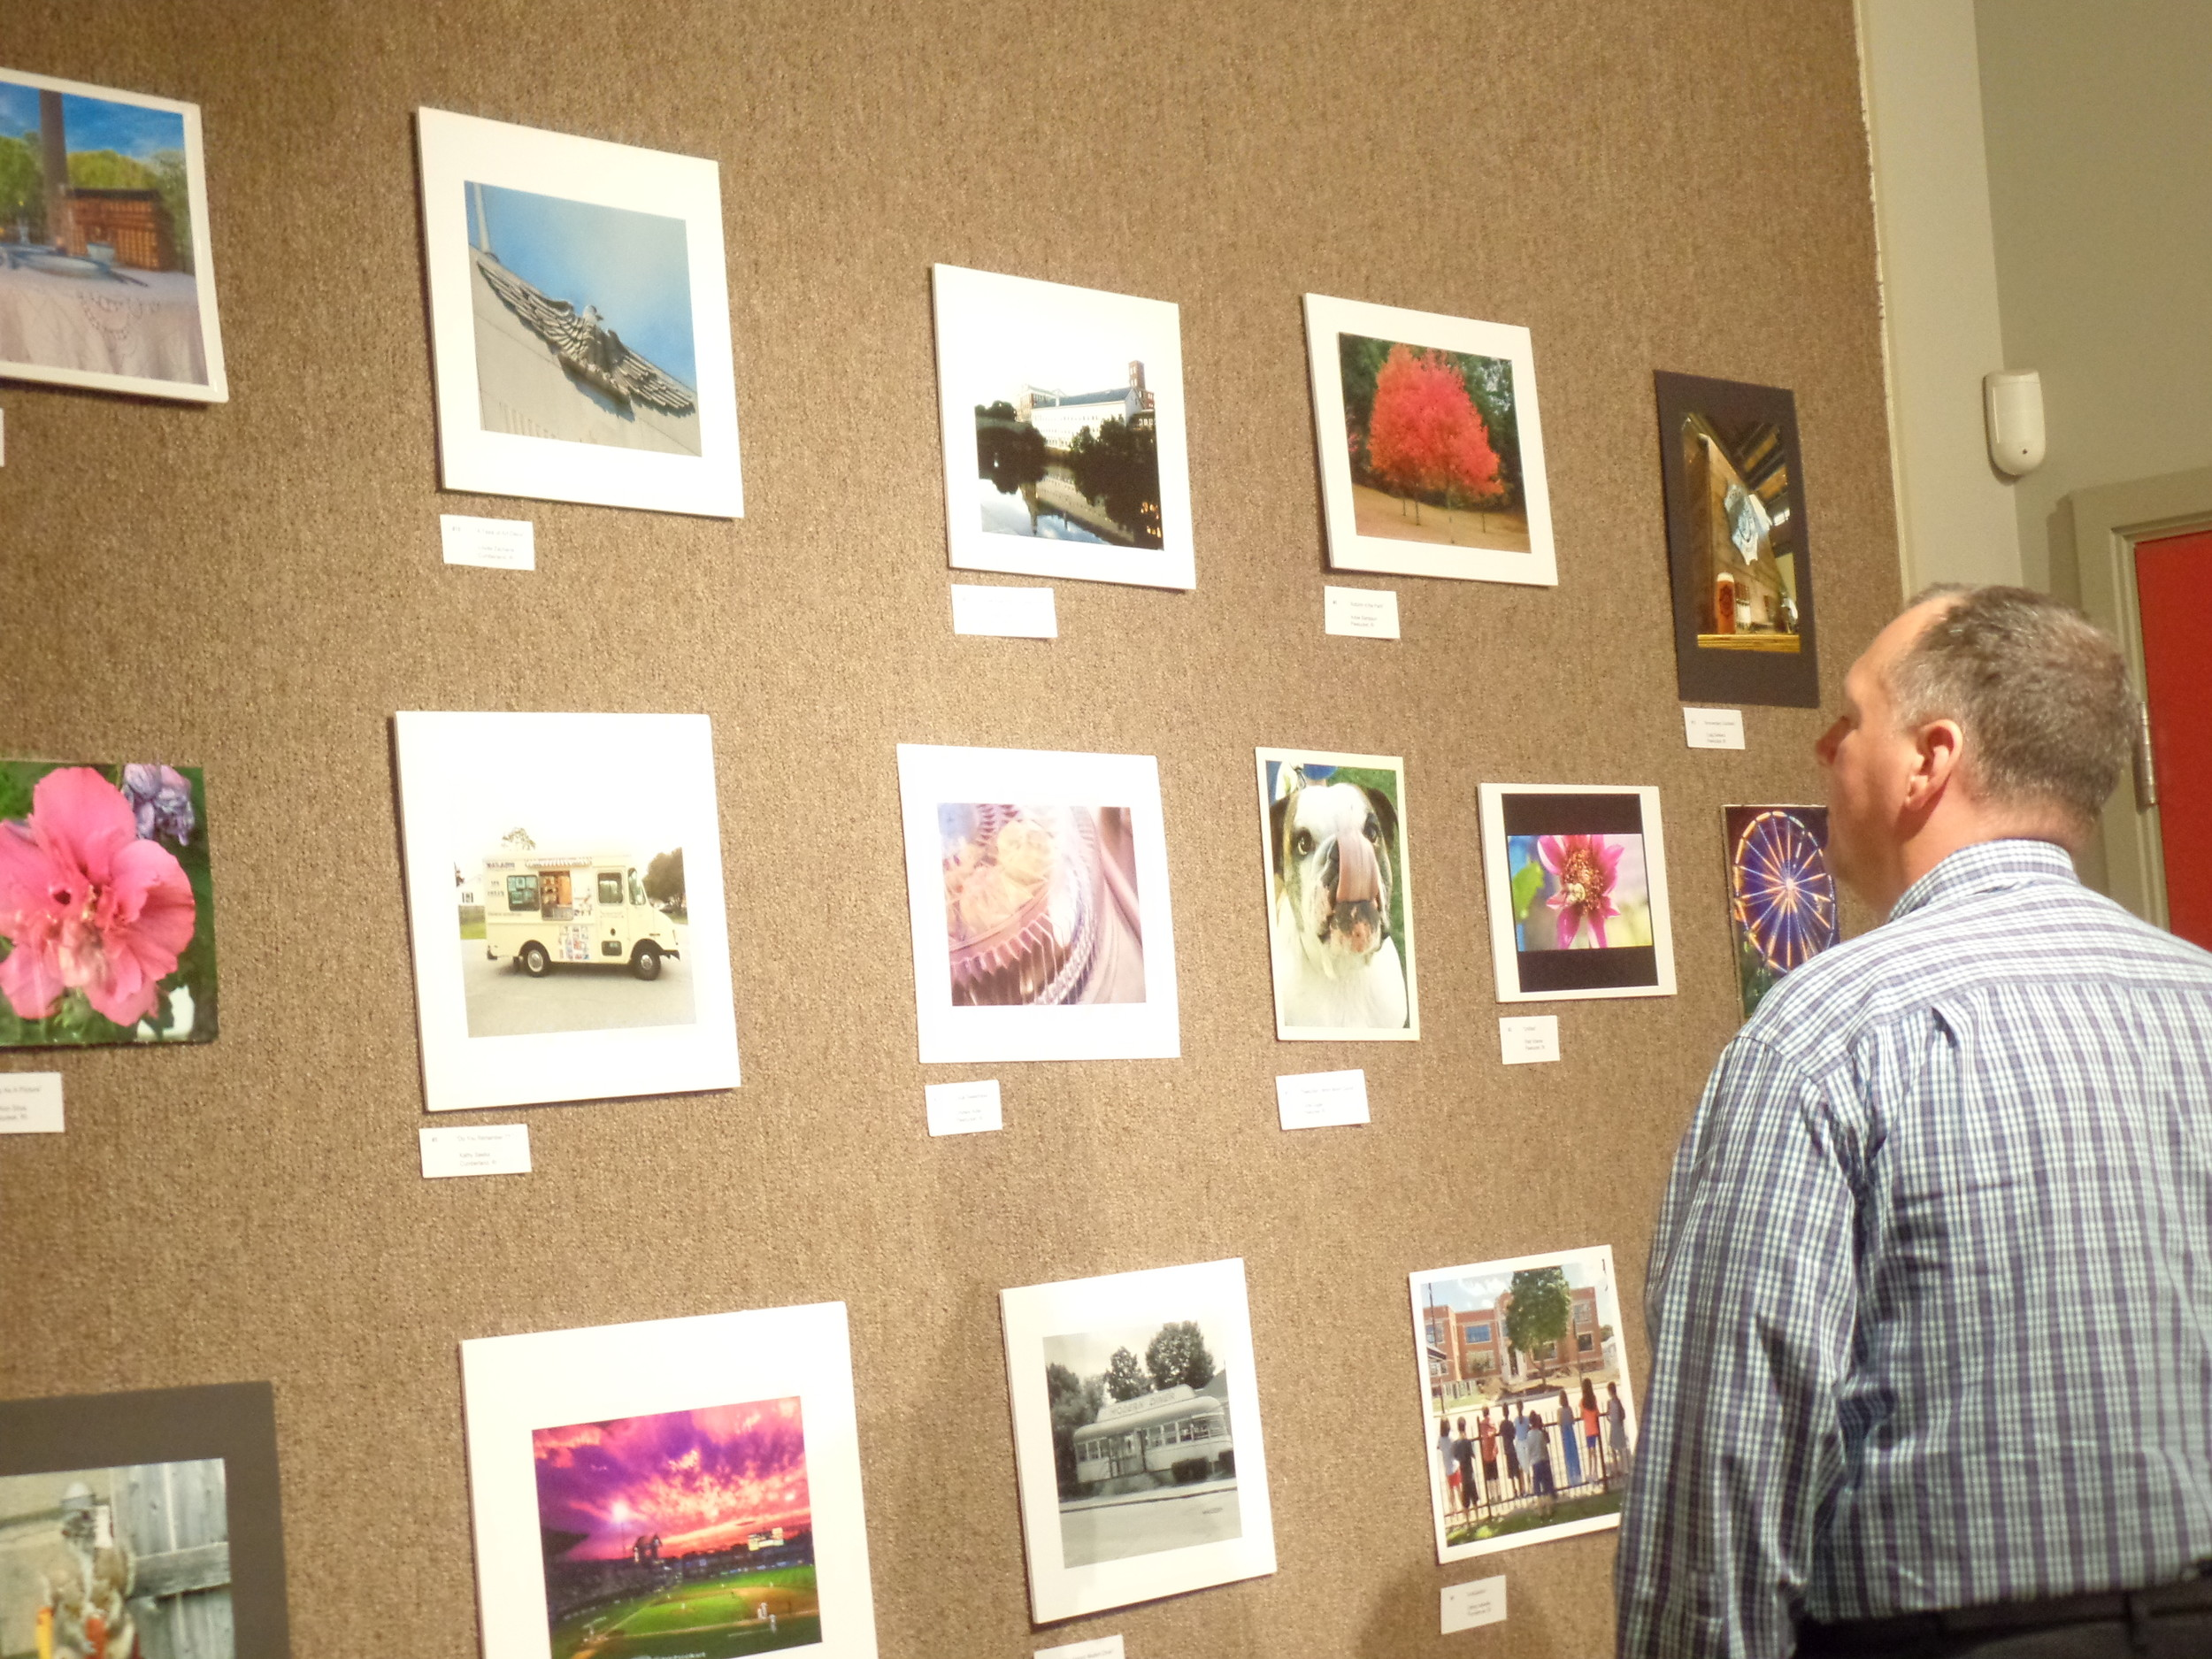 City of Pawtucket 19th Annual Photo Contest throughout the Month of September in Visitor Center Gallery